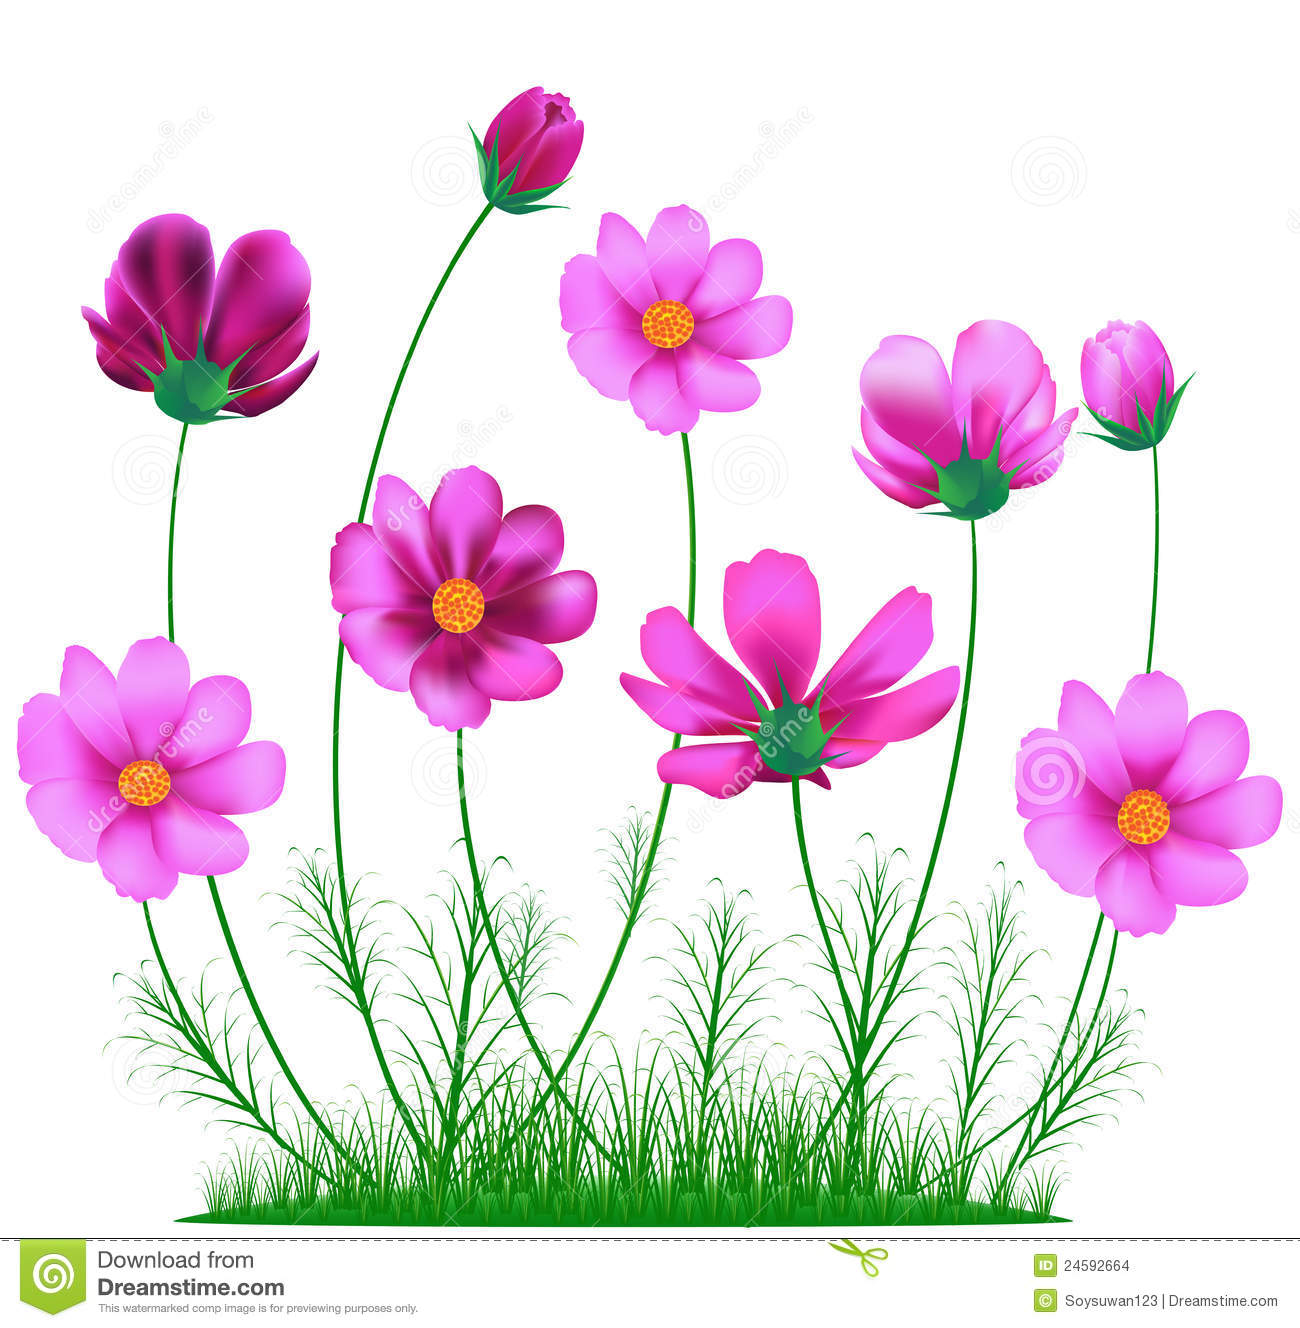 Cosmos Flower Stock Vector. Illustration Of Artwork